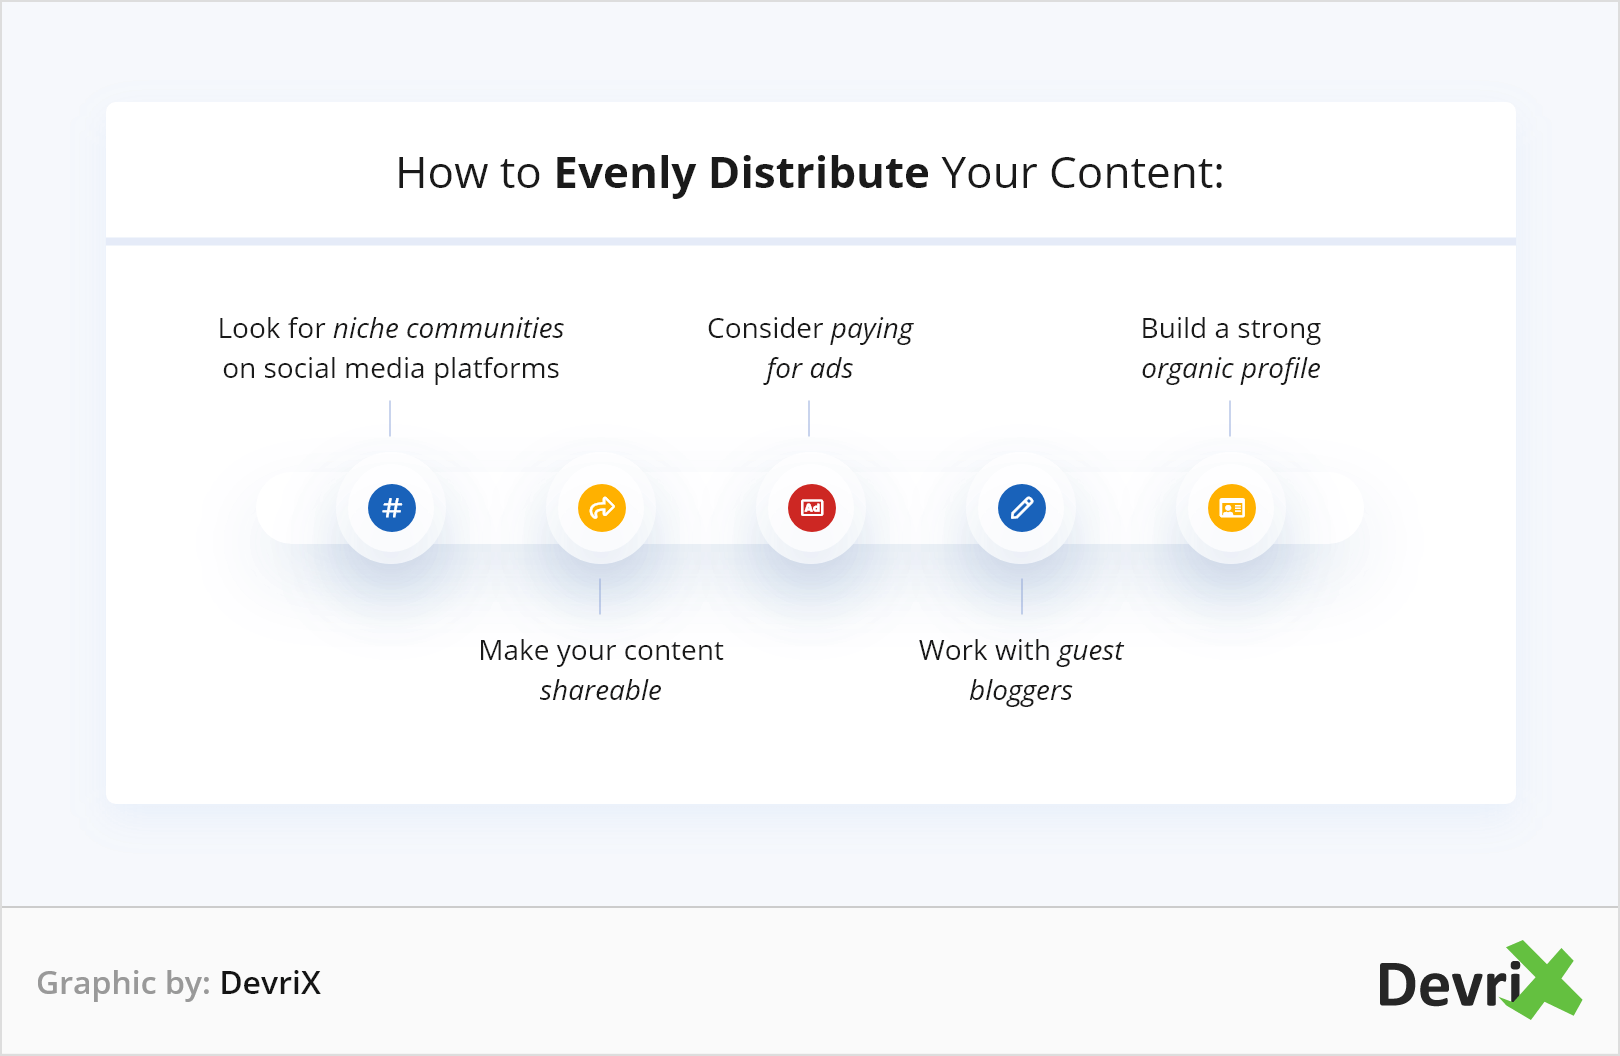 How to Evenly Distribute Your Content